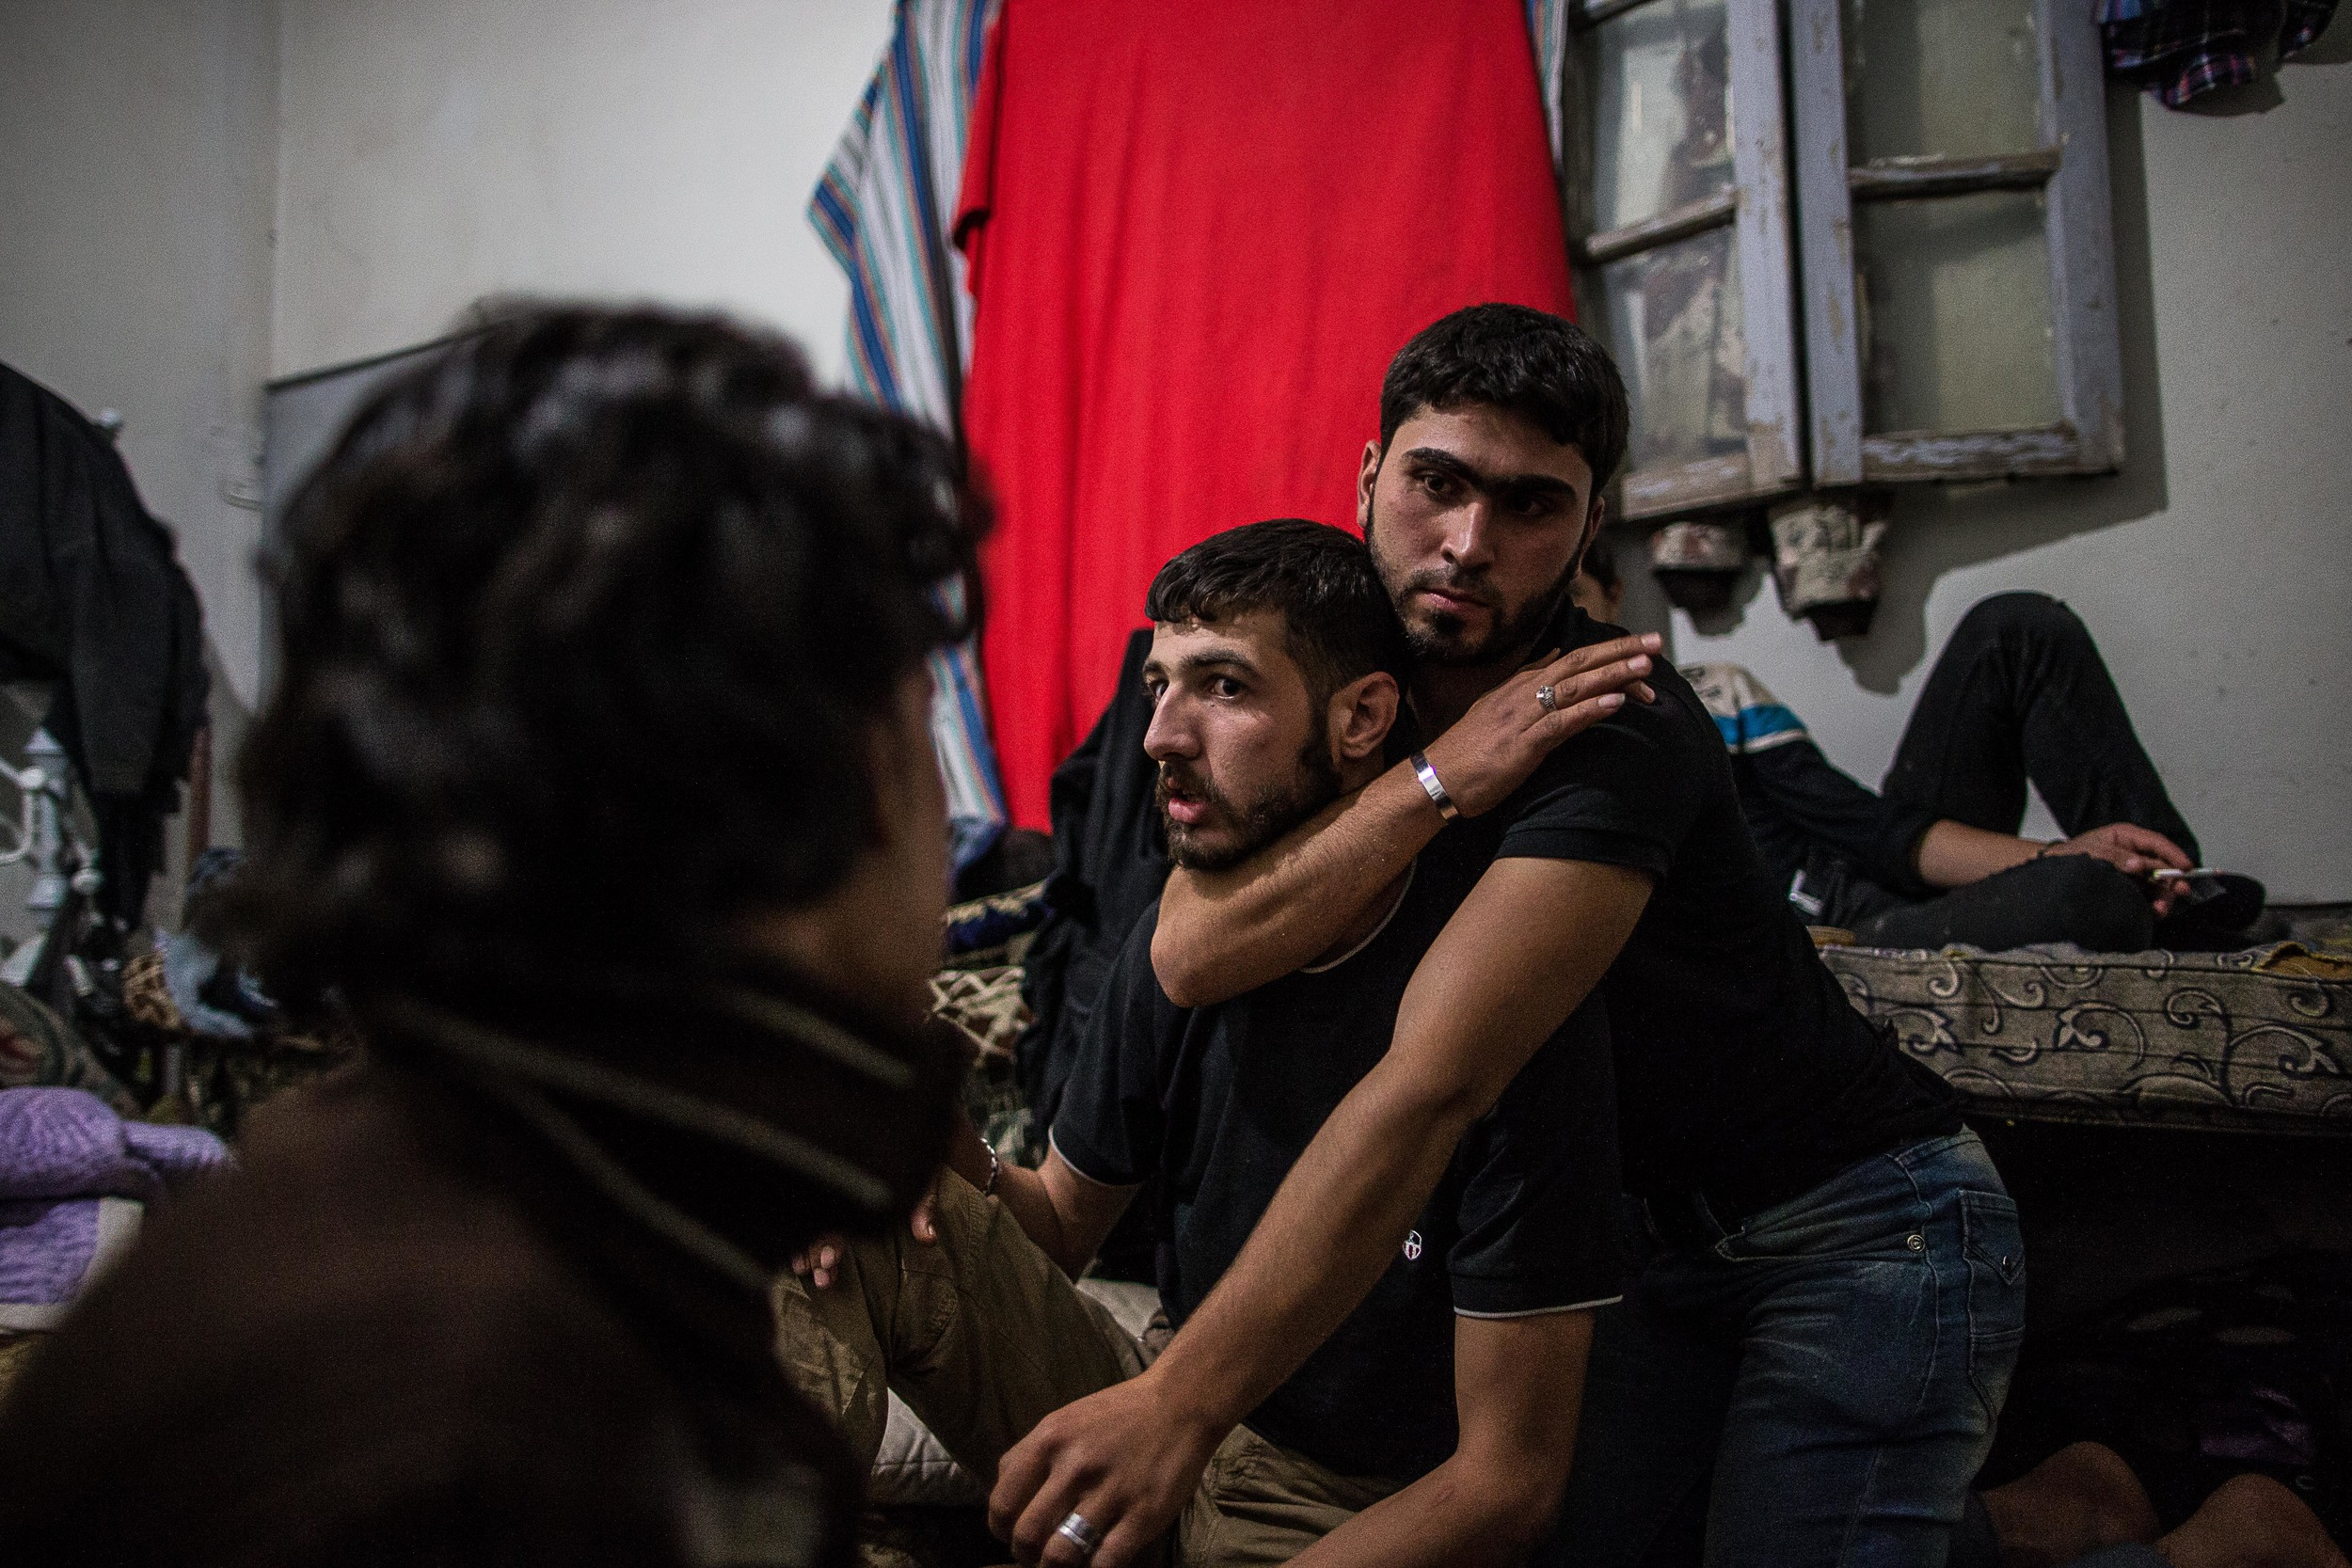 Another rebel named Hassan instructs others how to break someone's neck hours before they carry out a night raid on the other side of the wall.